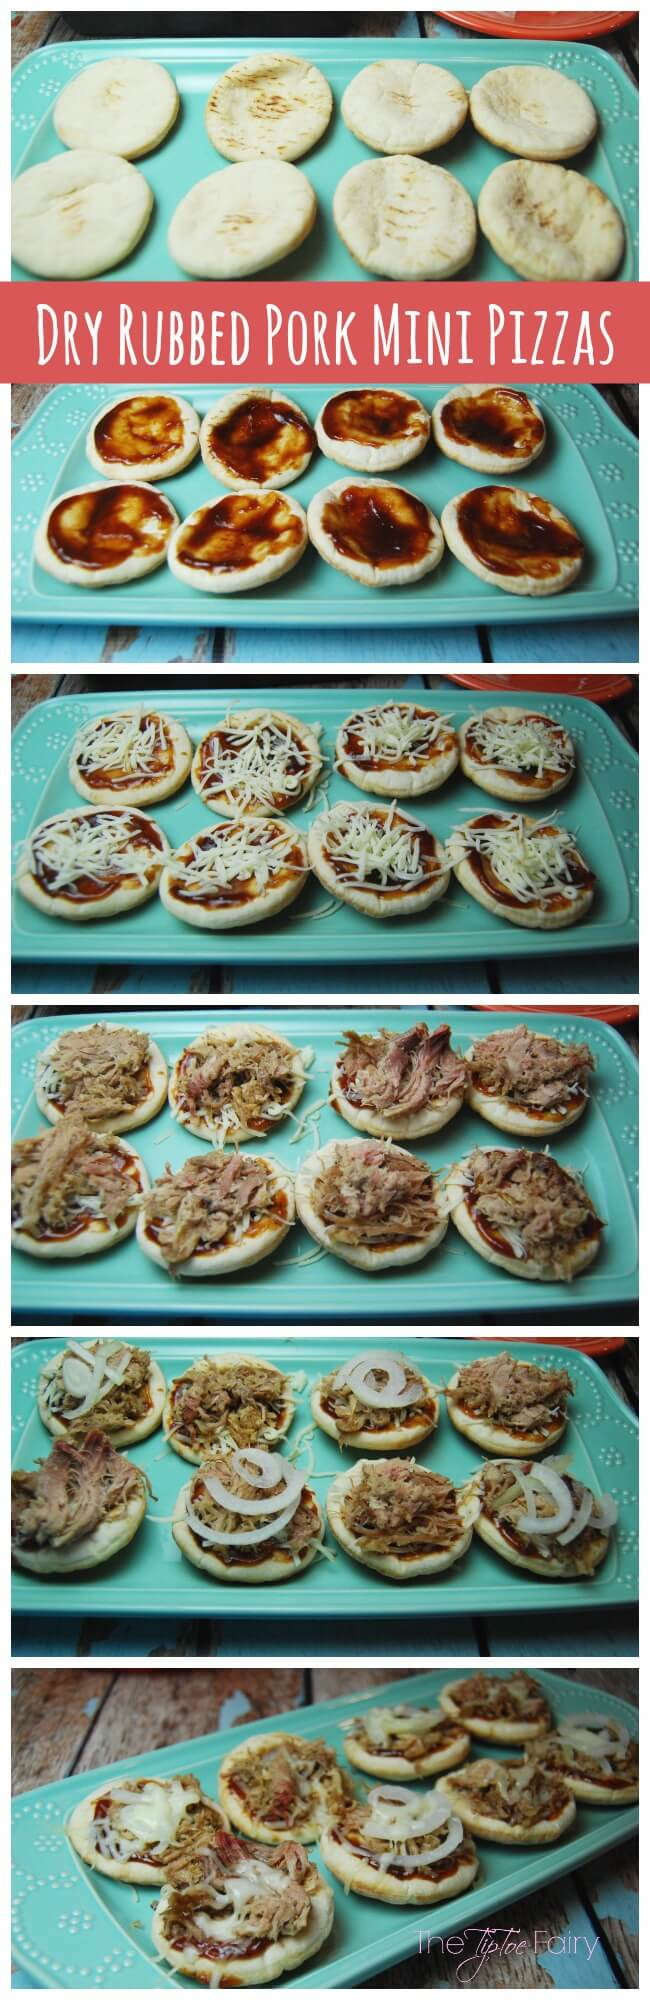 Super quick and easy meal with Smoked Pork BBQ Mini Pizzas | The TipToe Fairy #SmokehouseBBQ #bbq #pizza #barbecuepizza